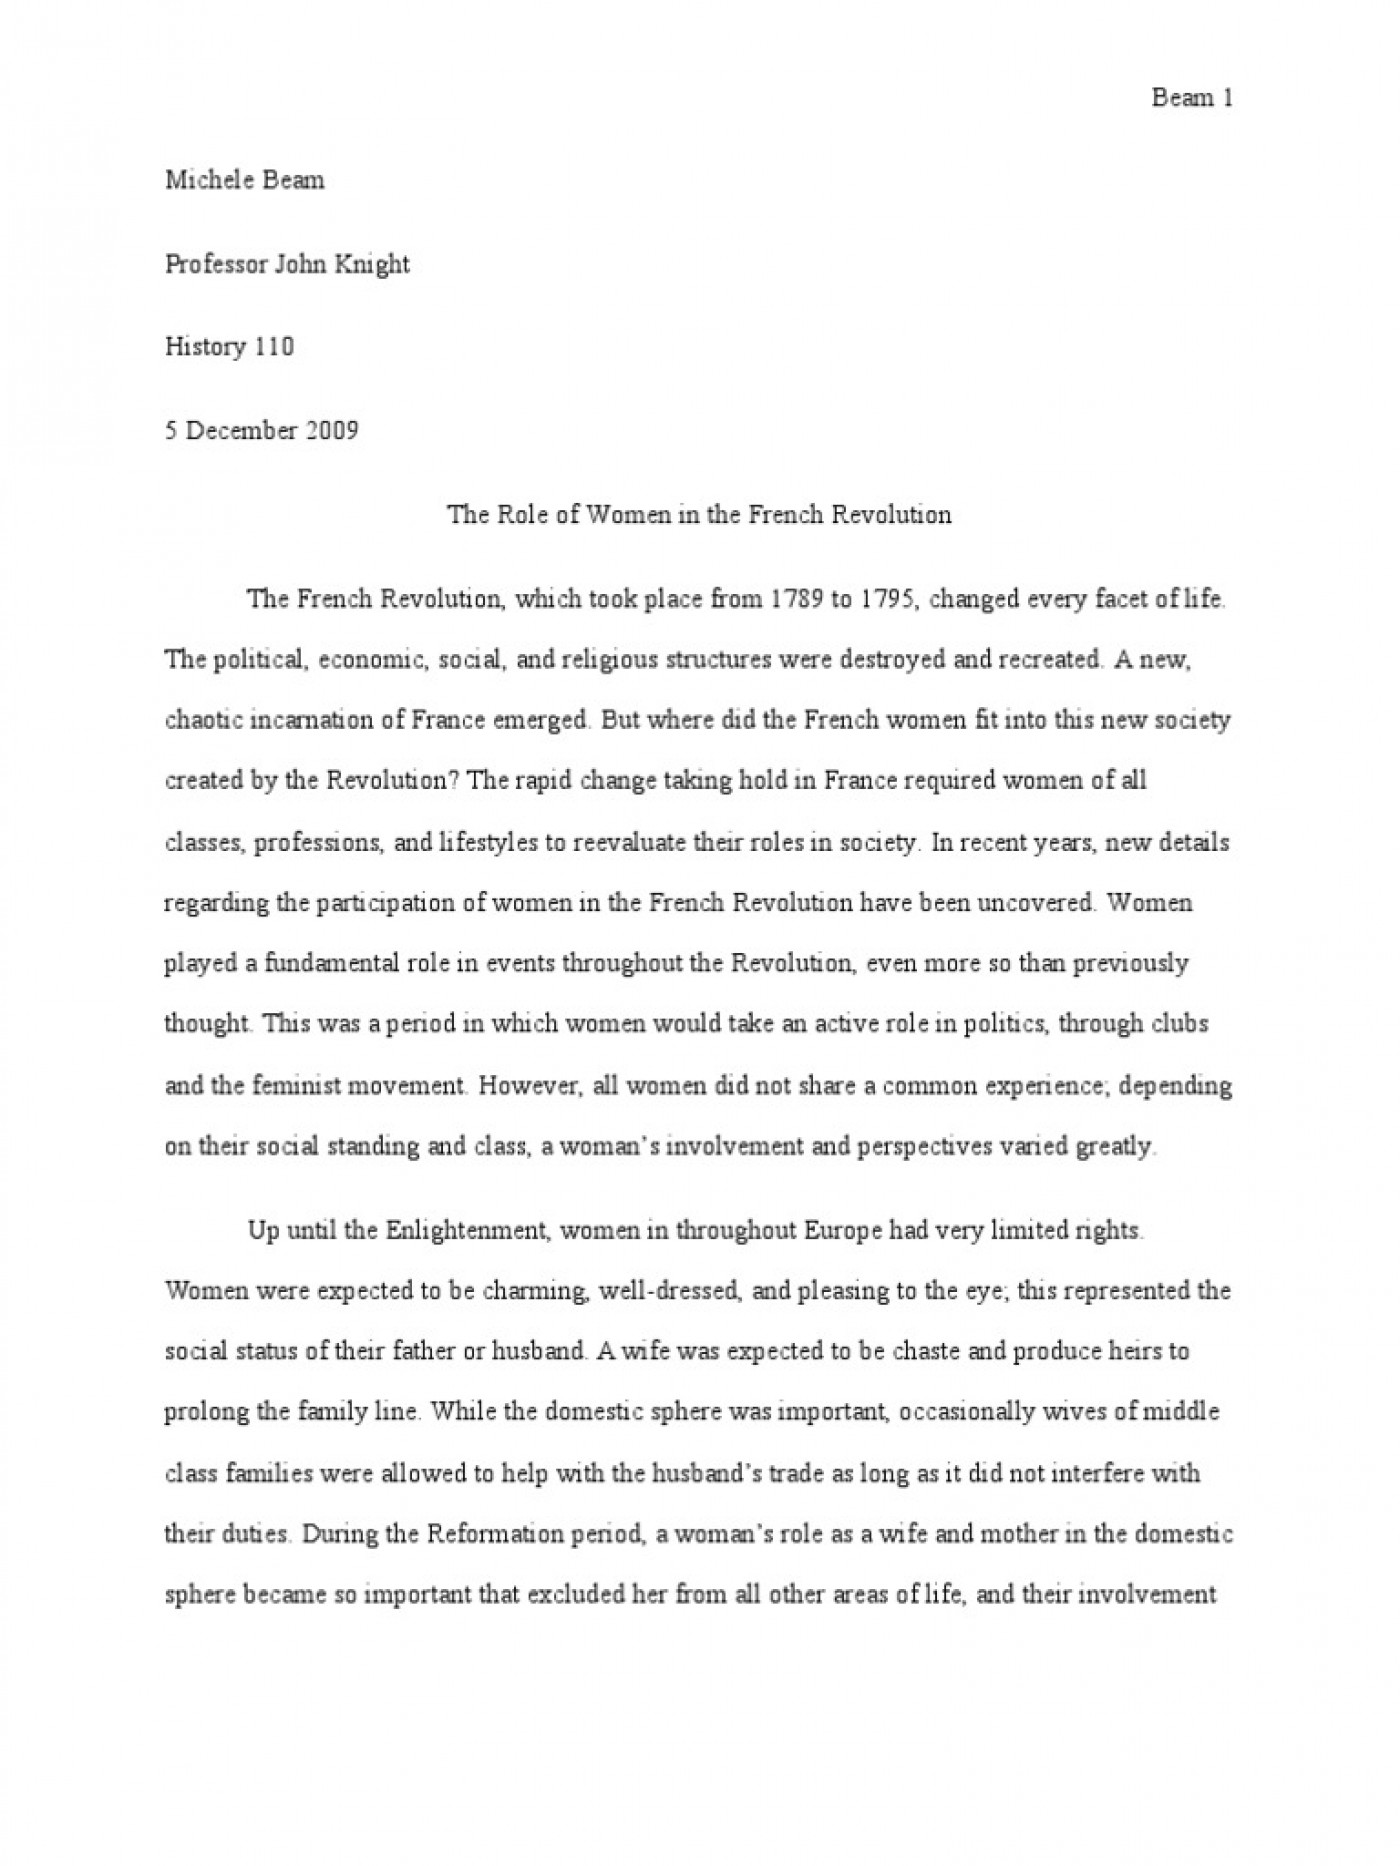 013 French Revolution Essay Phenomenal Outline Titles Causes Conclusion 1400